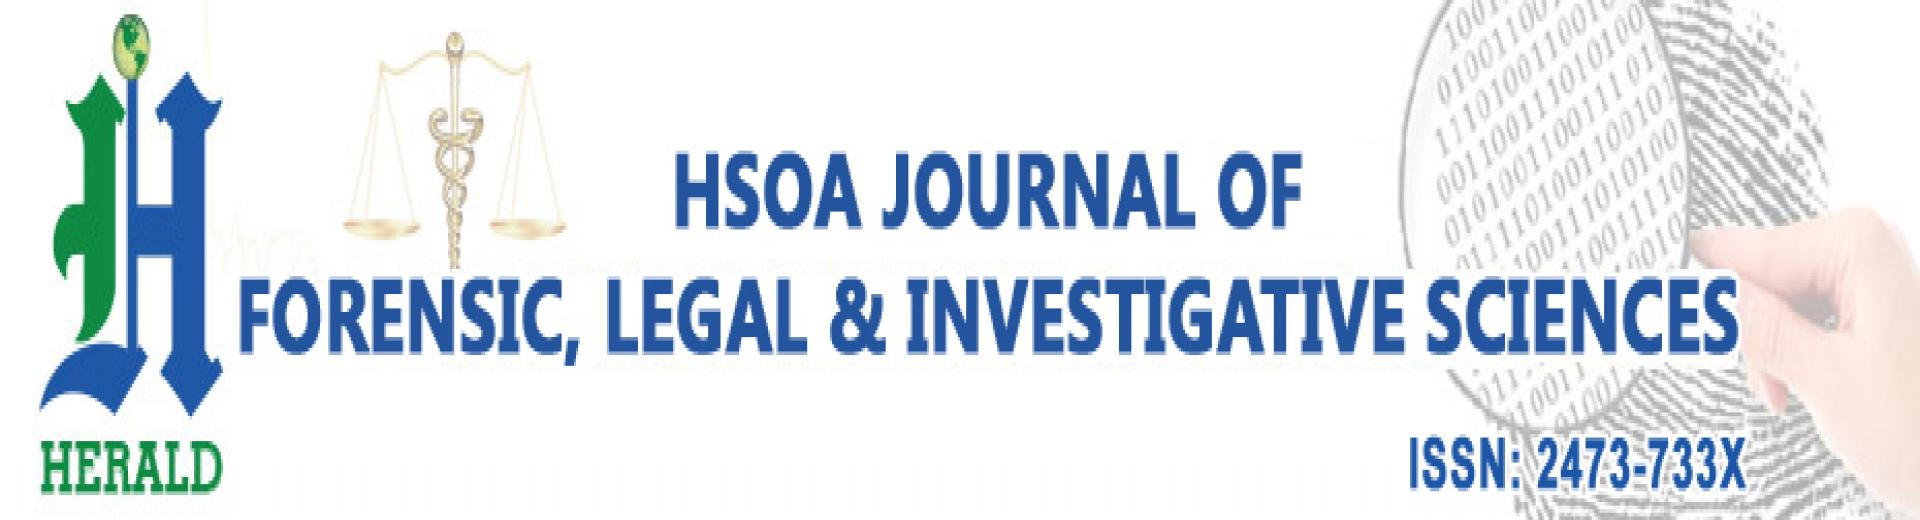 Journal Of Forensic Legal Investigative Sciences